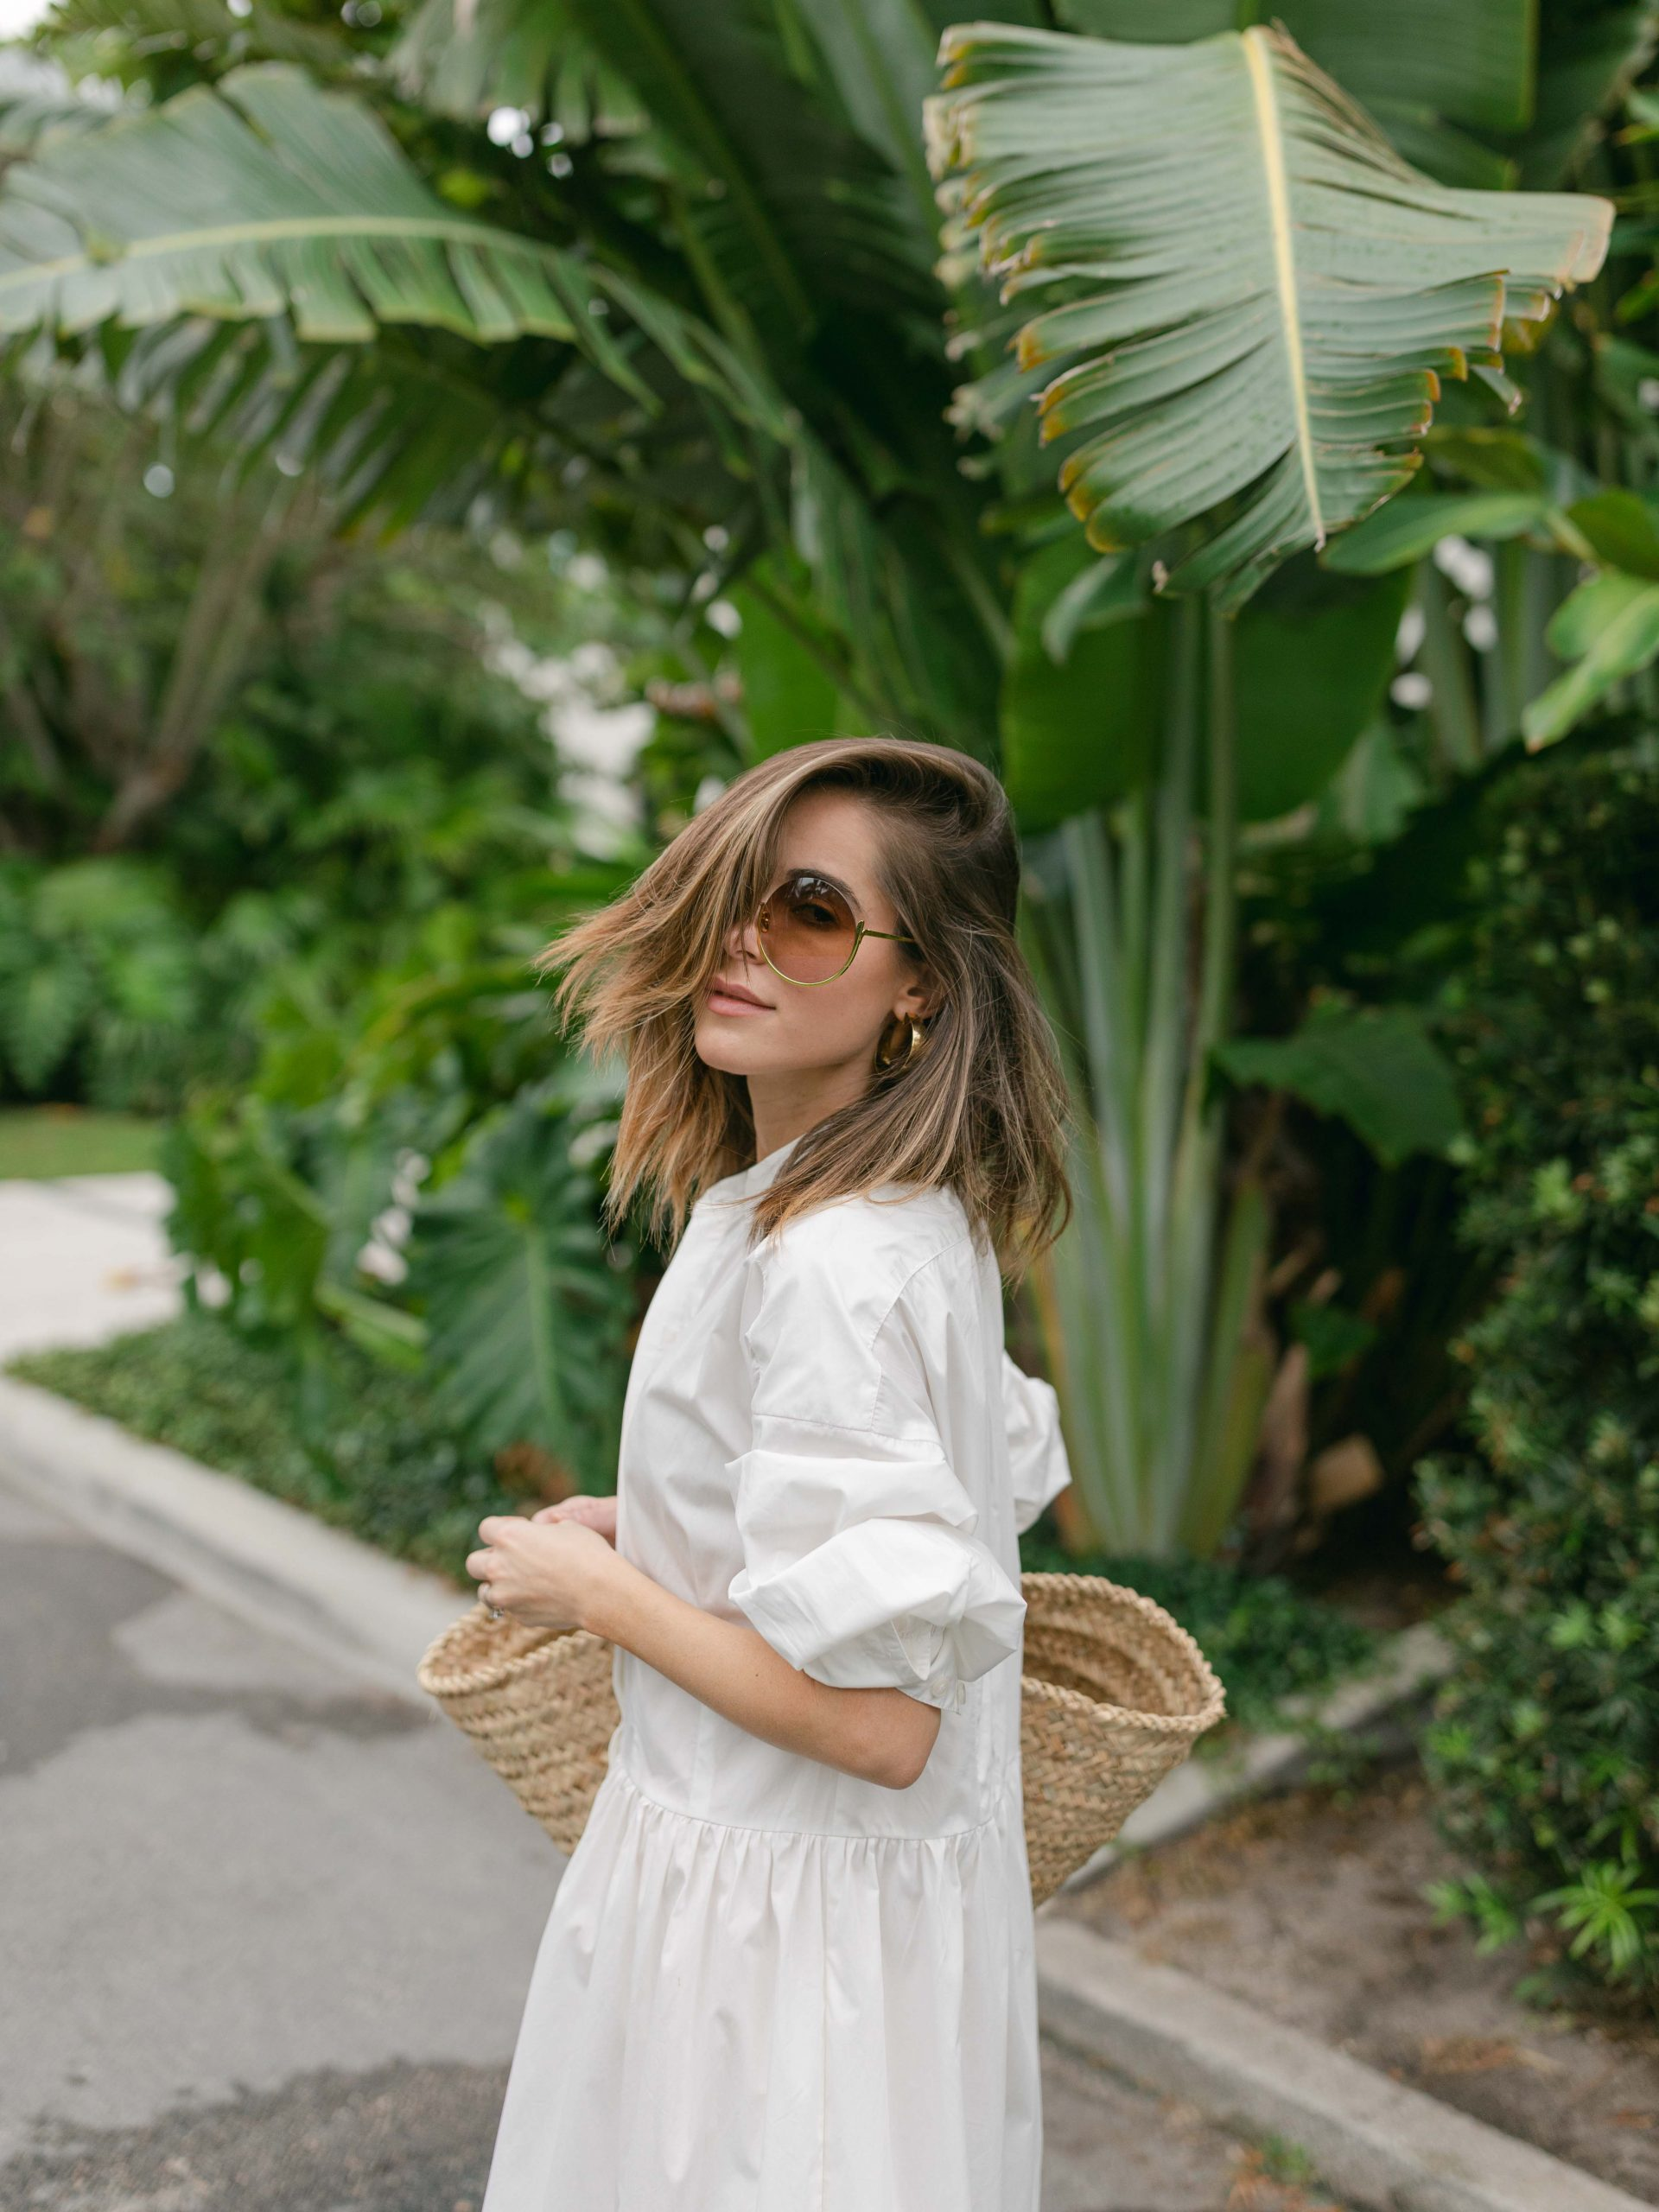 Easing Into Summer with Harvey Nichols by Stephanie Hill on The Style Bungalow